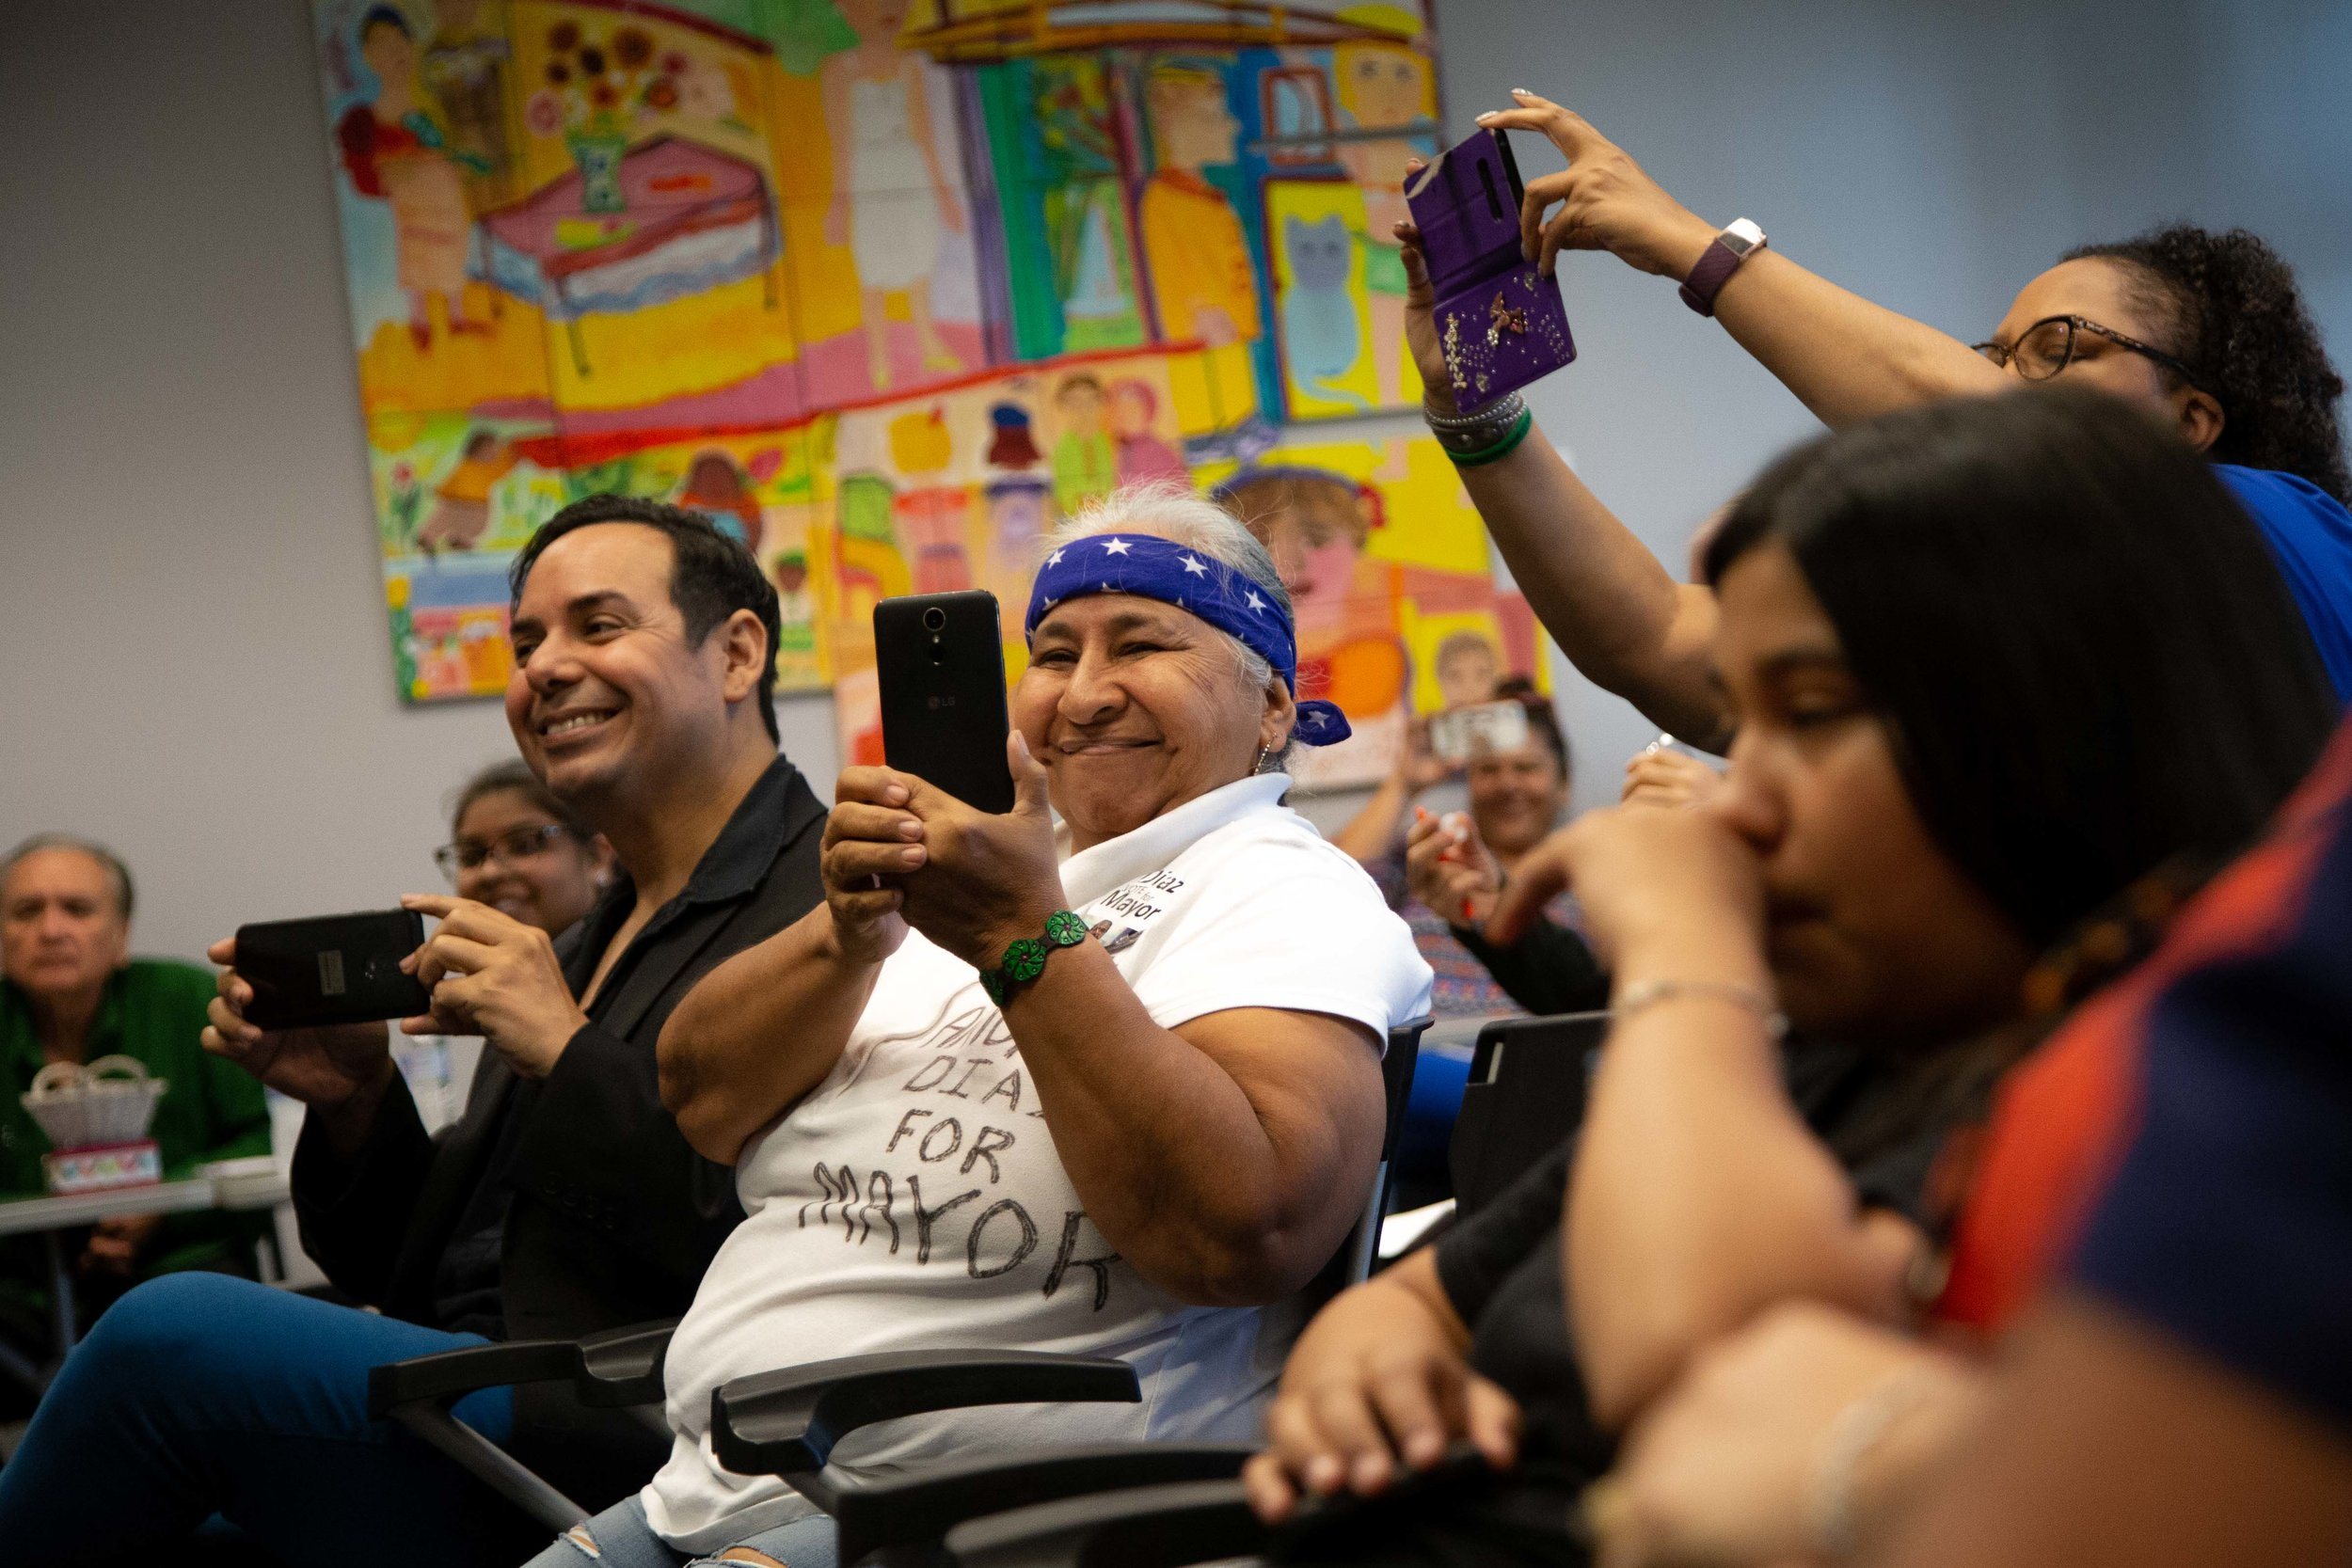 Attendees take photos of the candidates during the forum. (Photo Credit:  GA Media Productions )